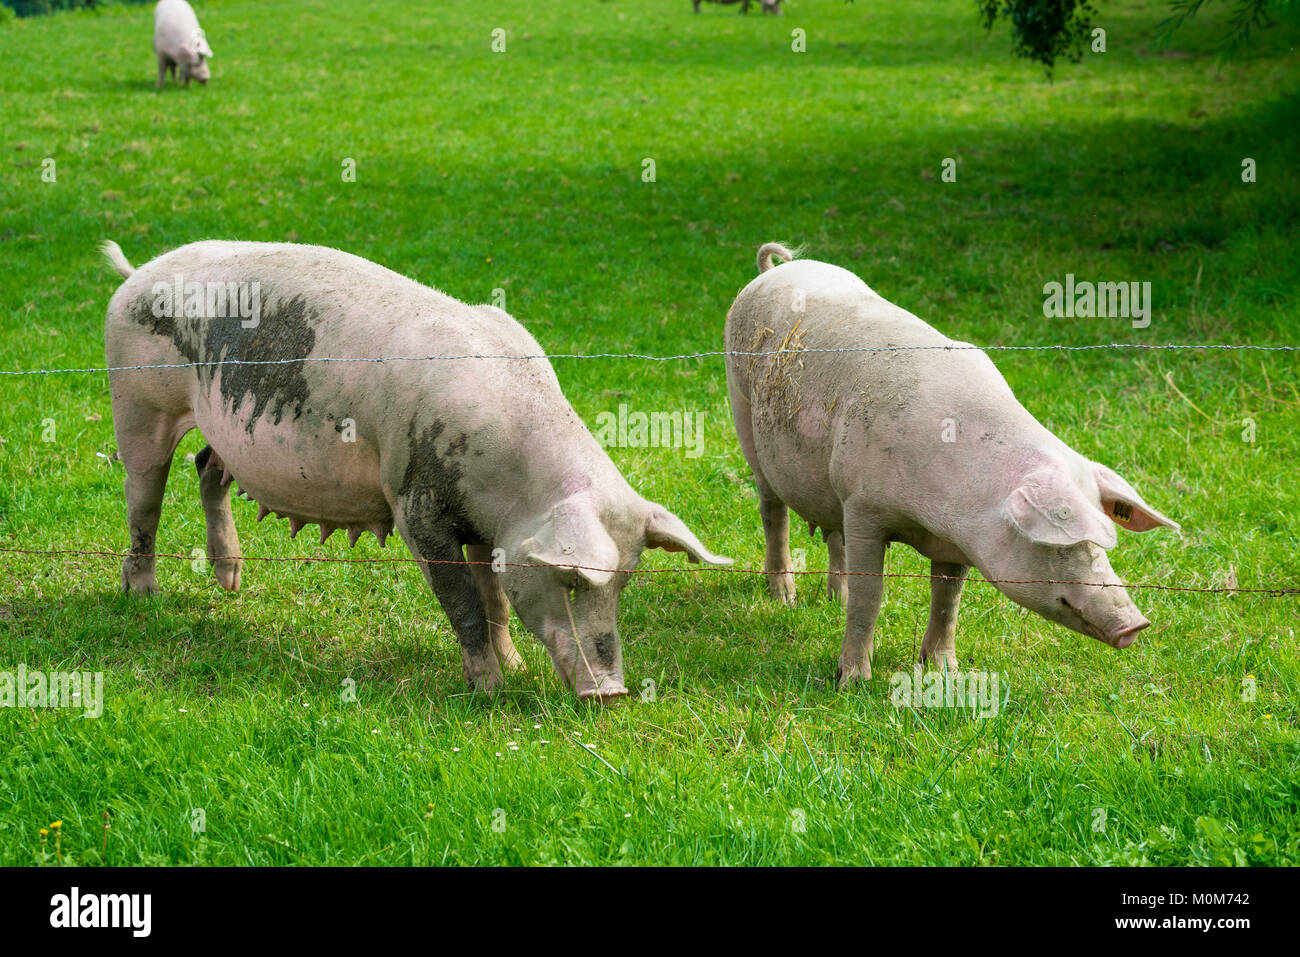 pig  standing on a grass lawn. The pig on the meadow - Stock Image